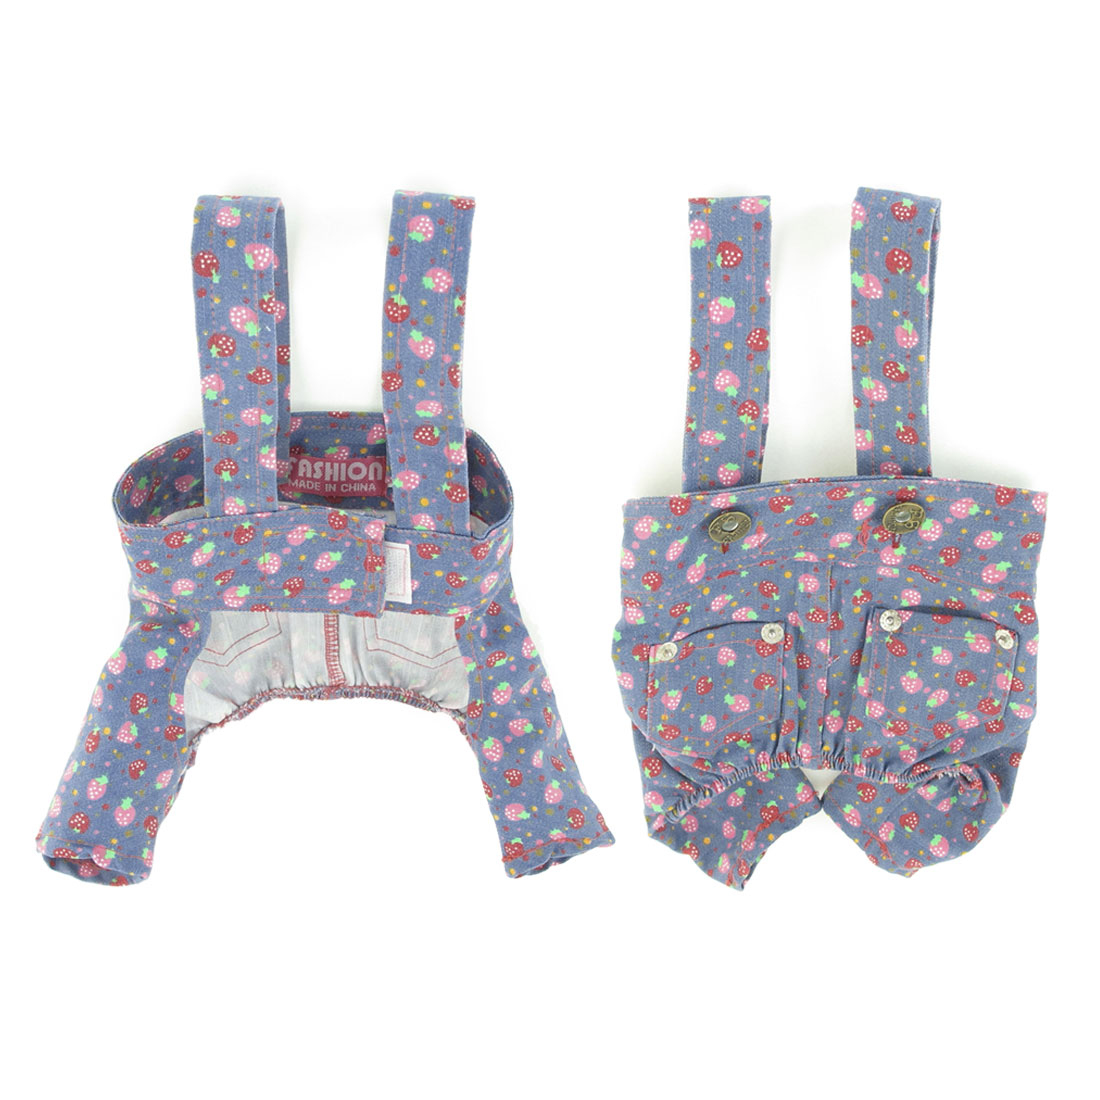 Hoop Loop Closure Pet Puppy Dog Suspender Pants Denim Jeans Clothes Size M